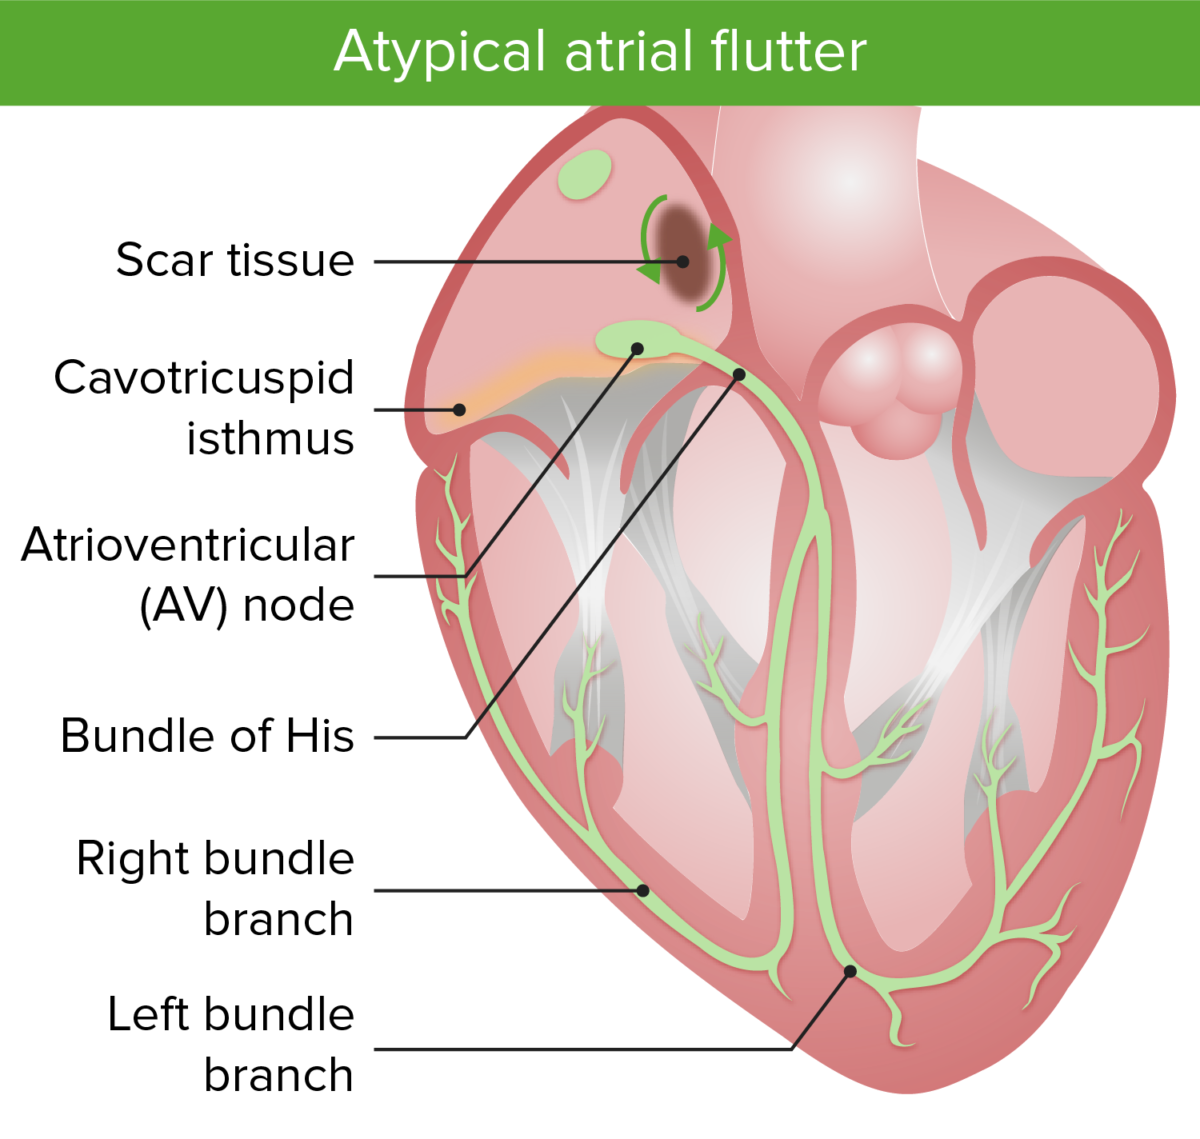 Atypical atrial flutter